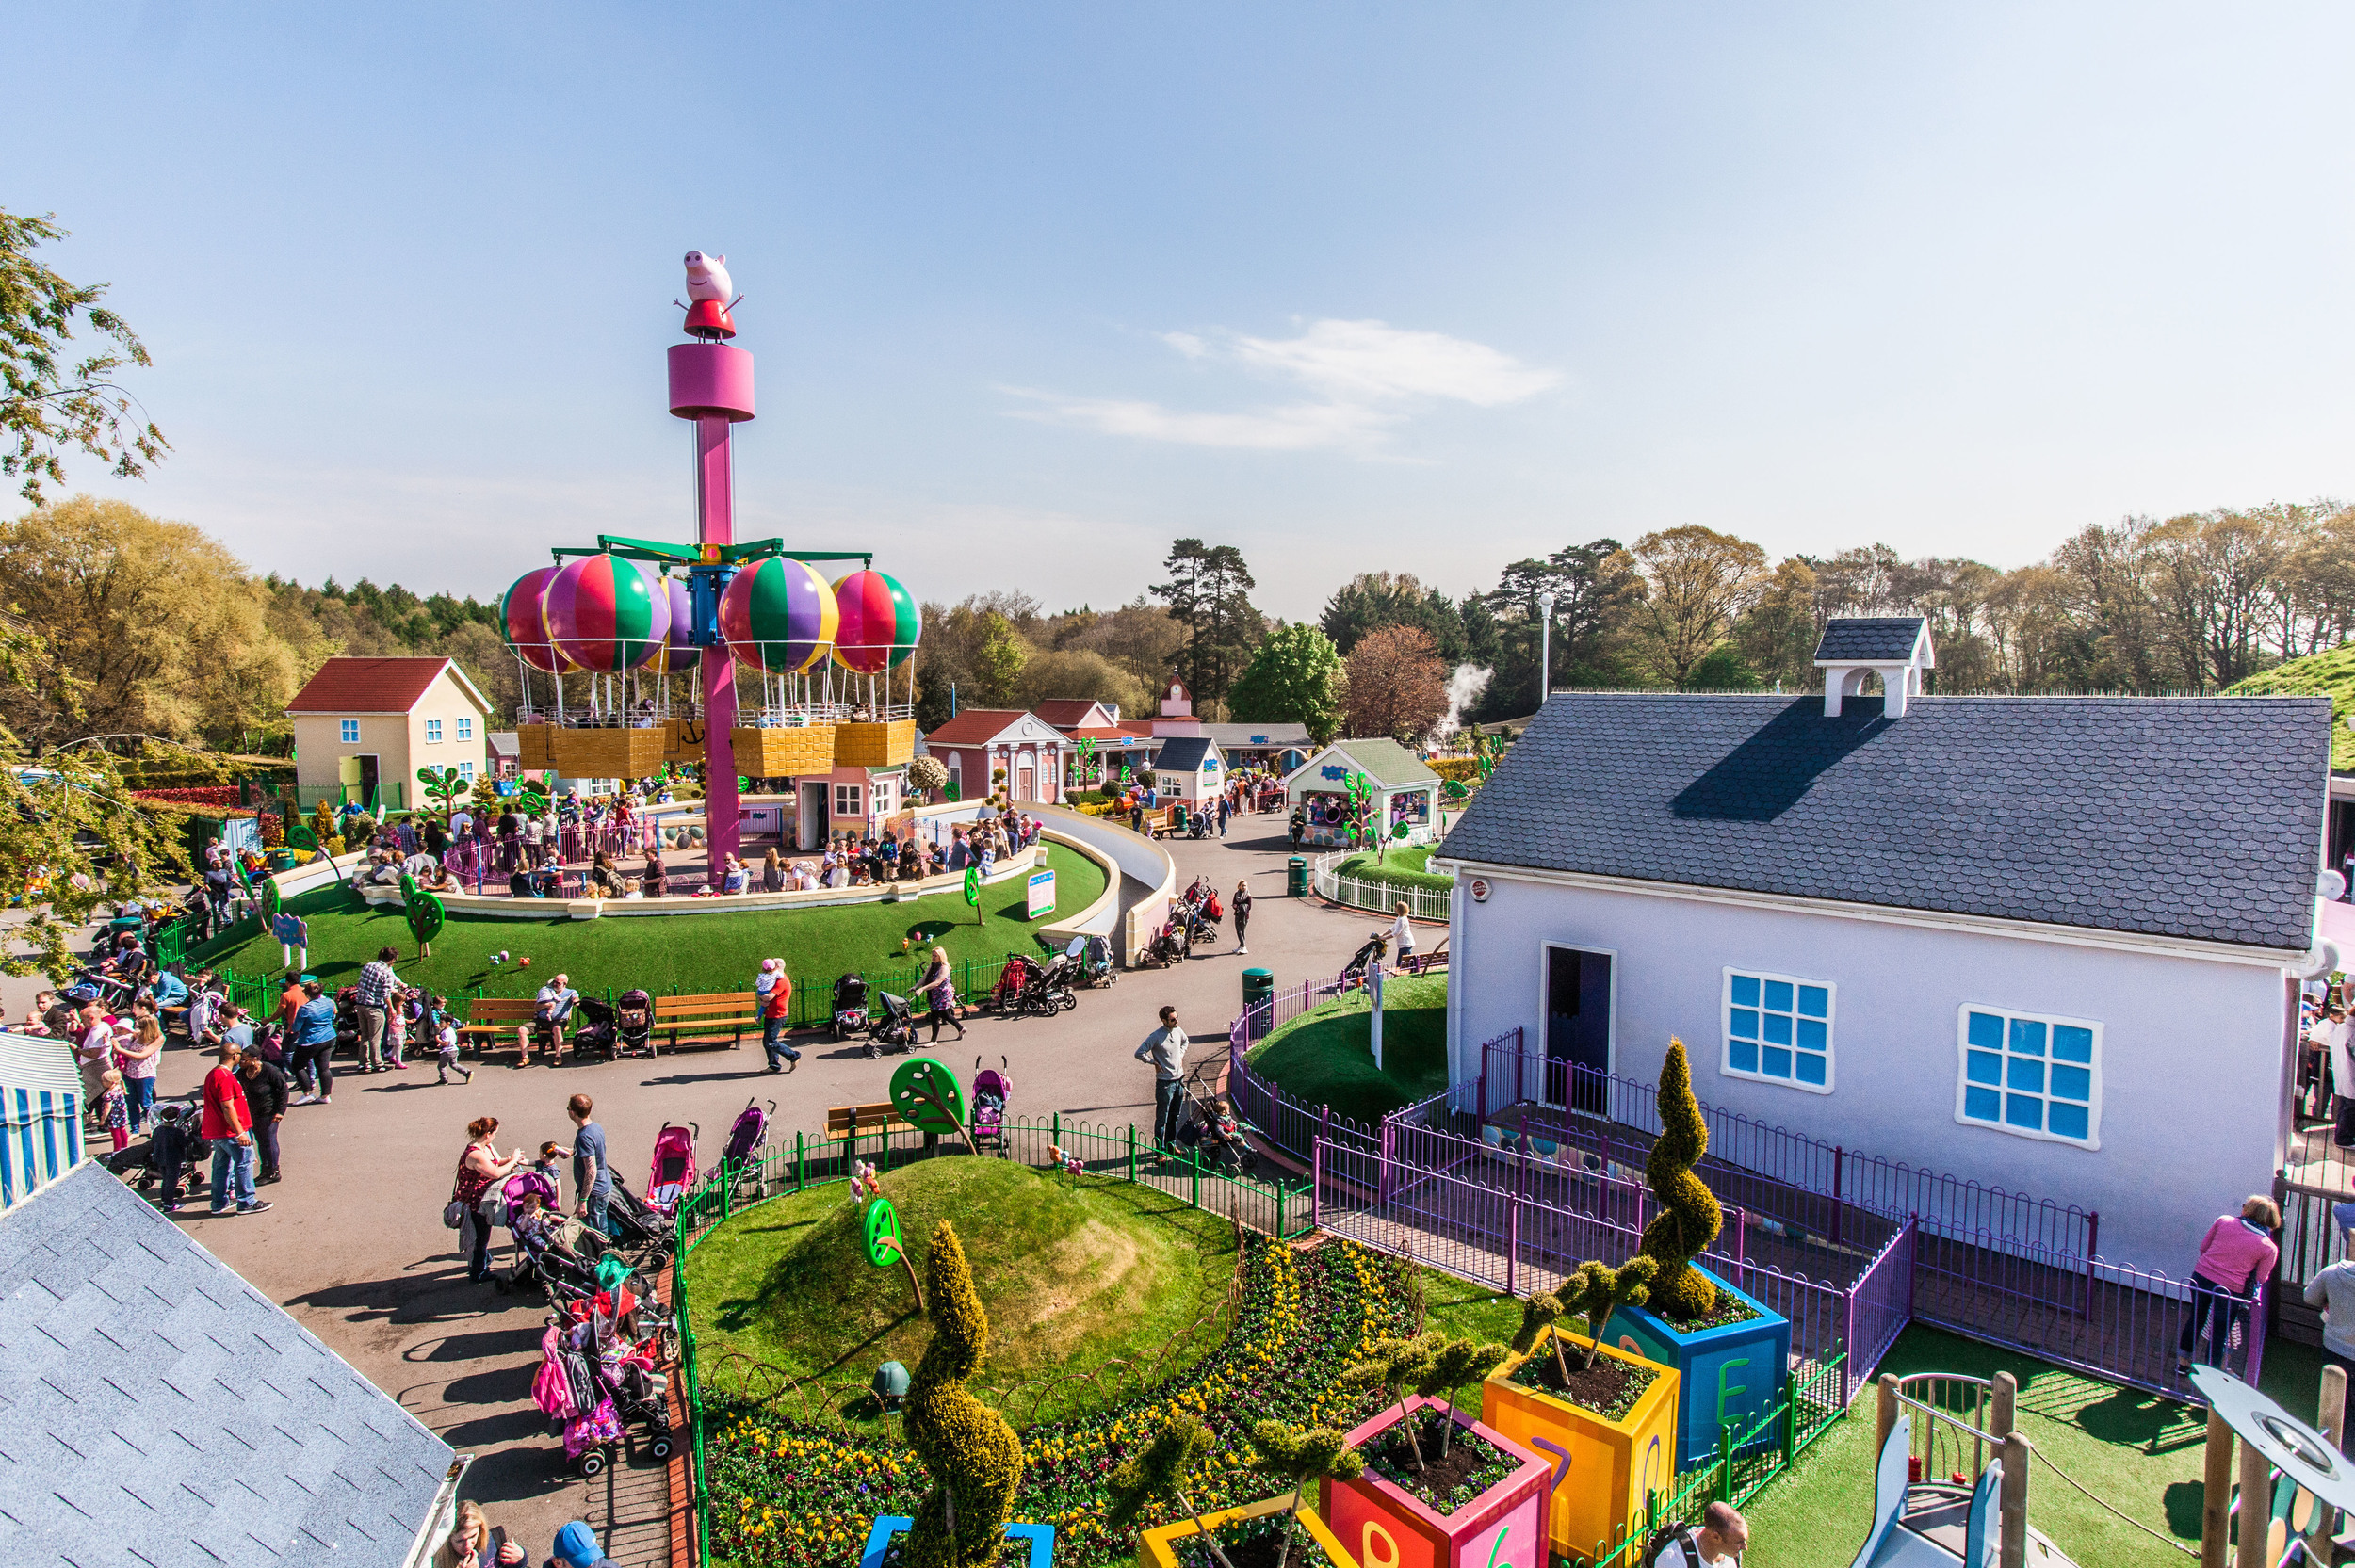 top 10 amusement parks in the uk aol travel uk